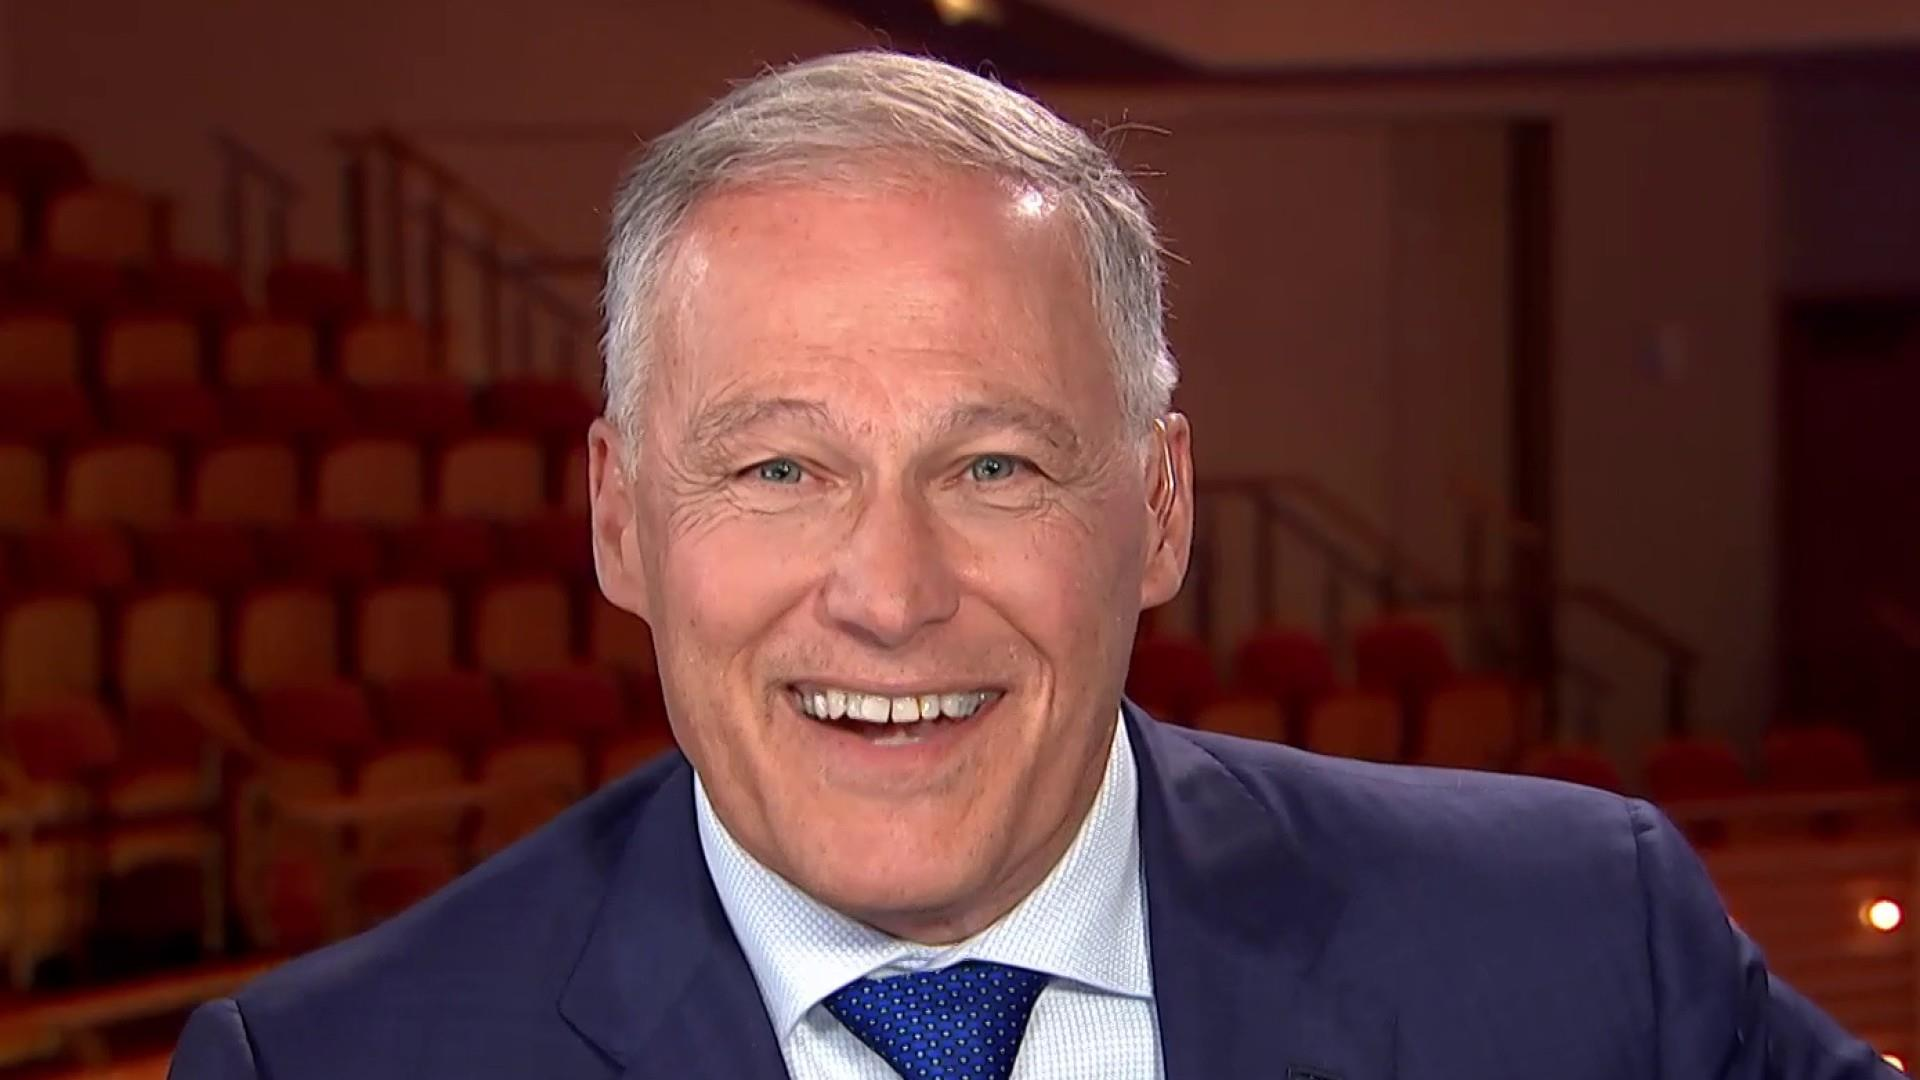 Gov. Inslee speaks on his debate performance